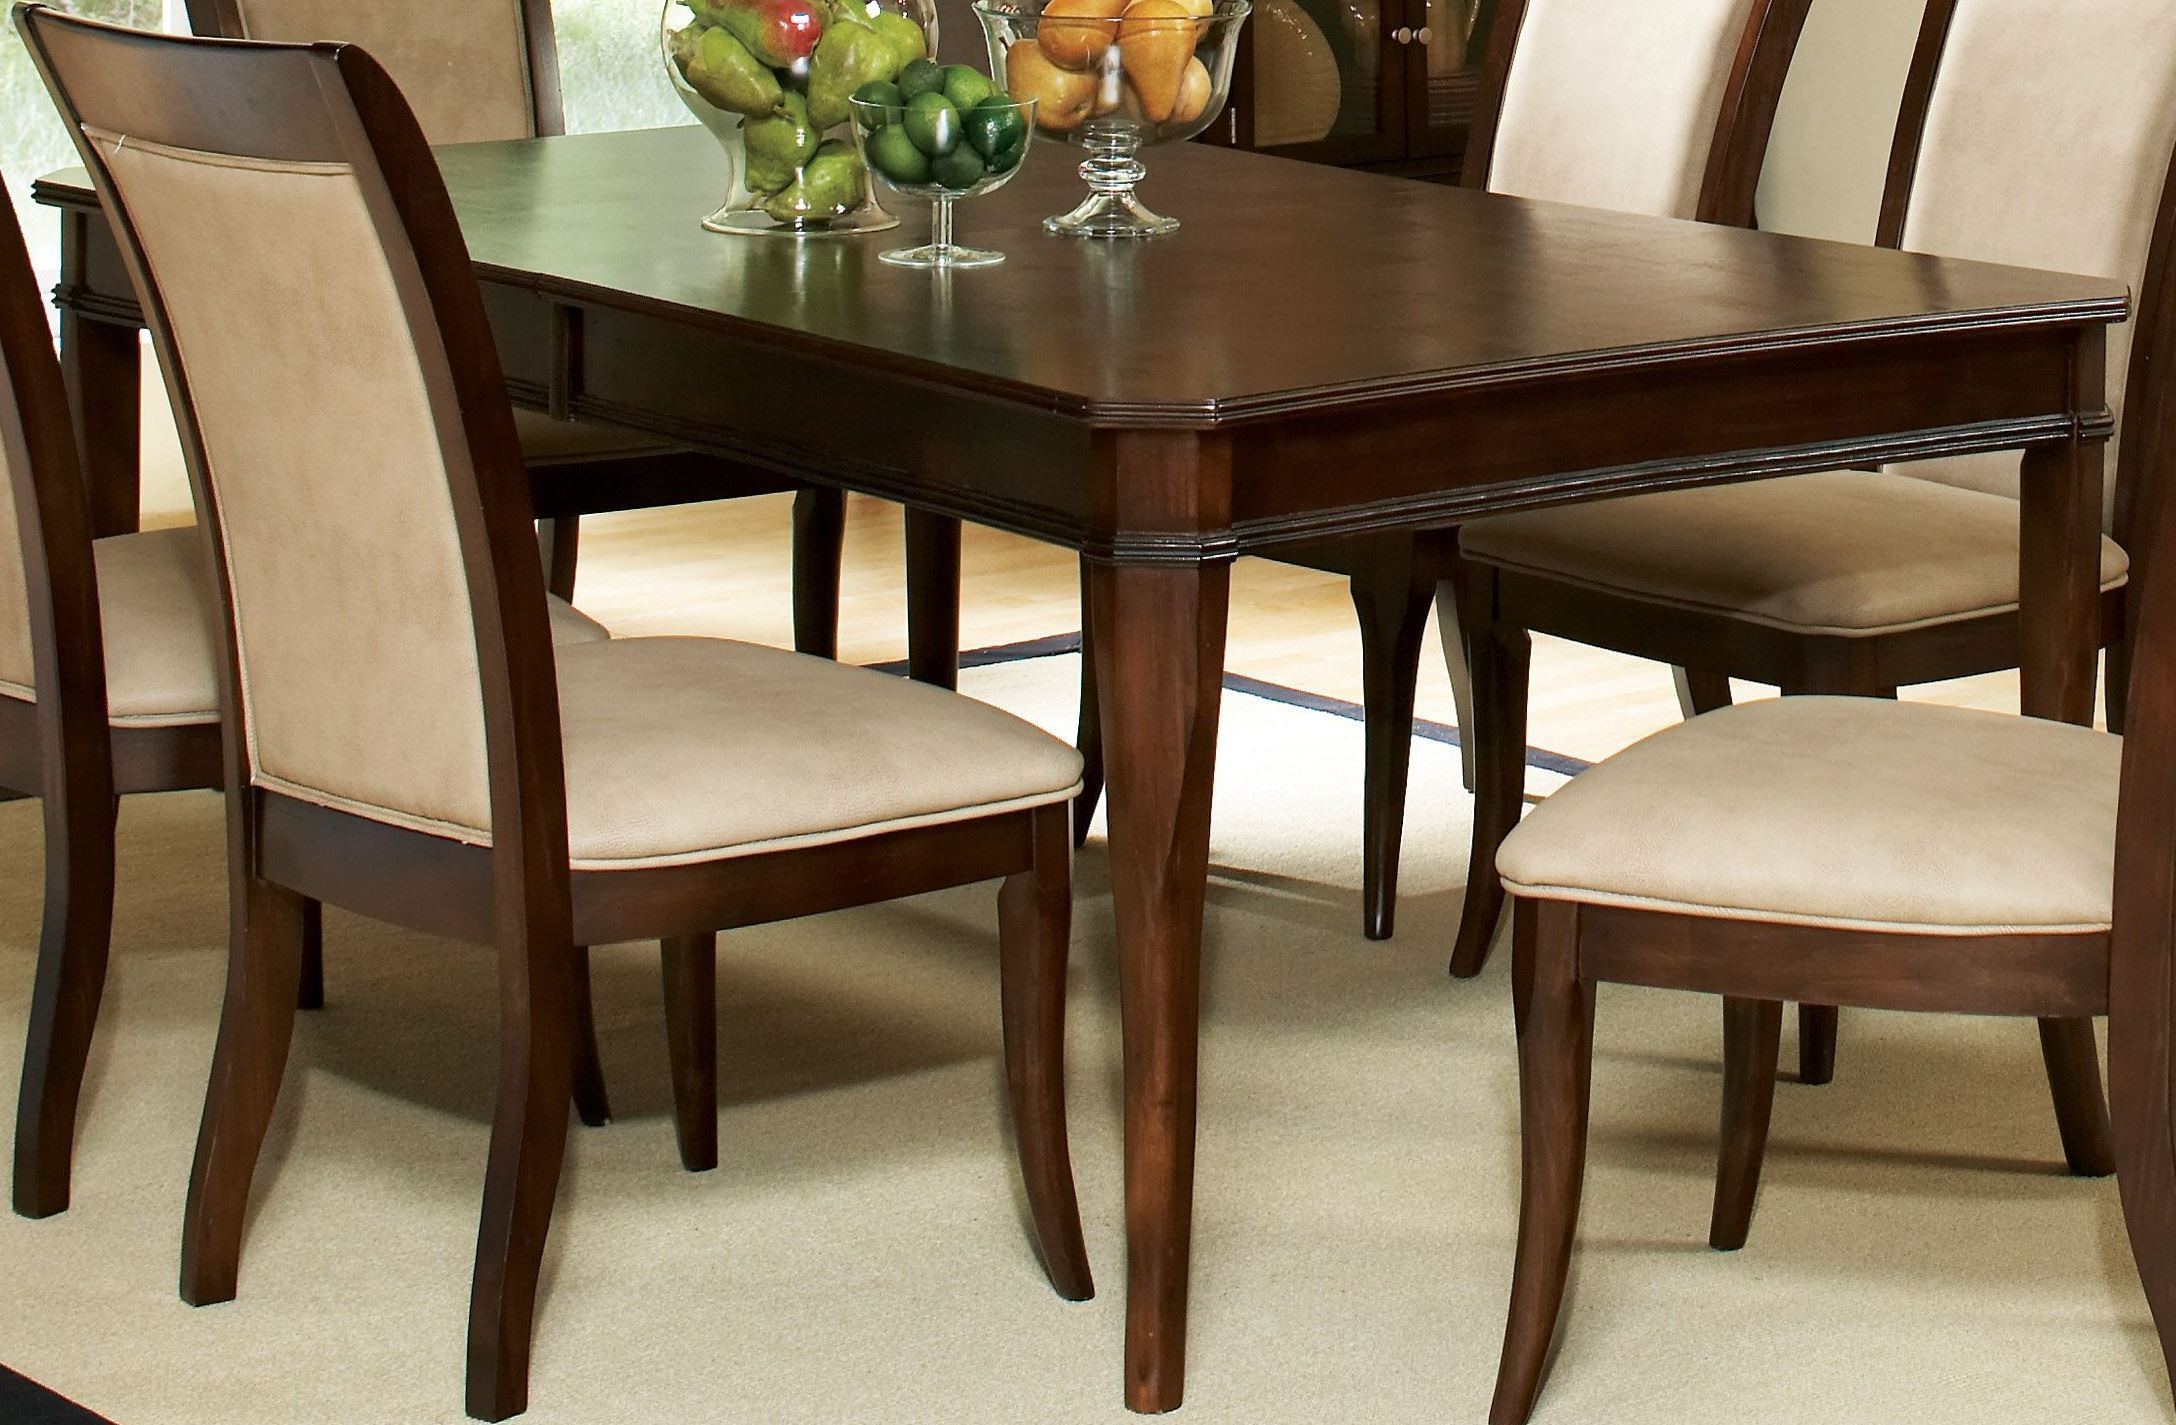 marseille merlot cherry extendable rectangular dining table from steve silver ms800t coleman. Black Bedroom Furniture Sets. Home Design Ideas